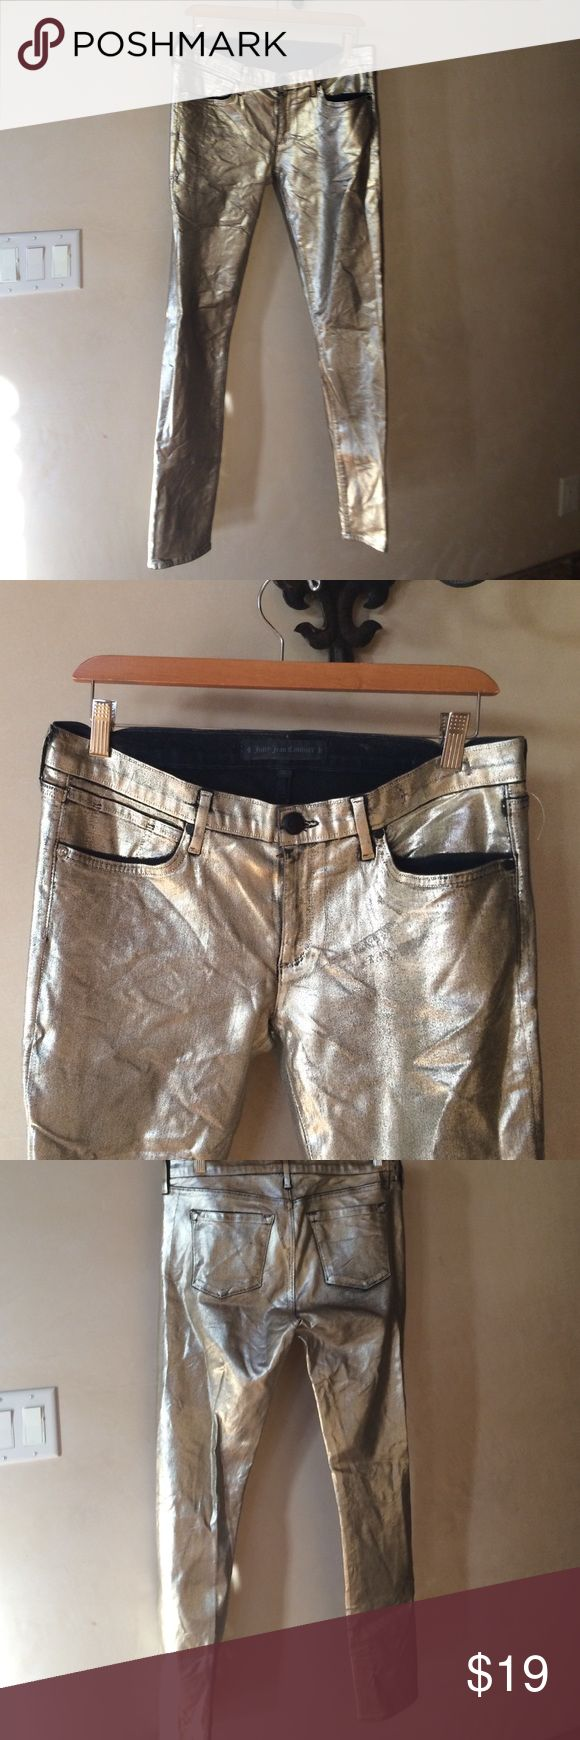 Juicy Couture Gold jeans size 30 Juicy Couture Gold jeans size 30. 77% cotton 21% polyester and 2% elastane. Measures 41 1/2 inches in length and the inseam is about   31 inches. Juicy Couture Jeans Skinny